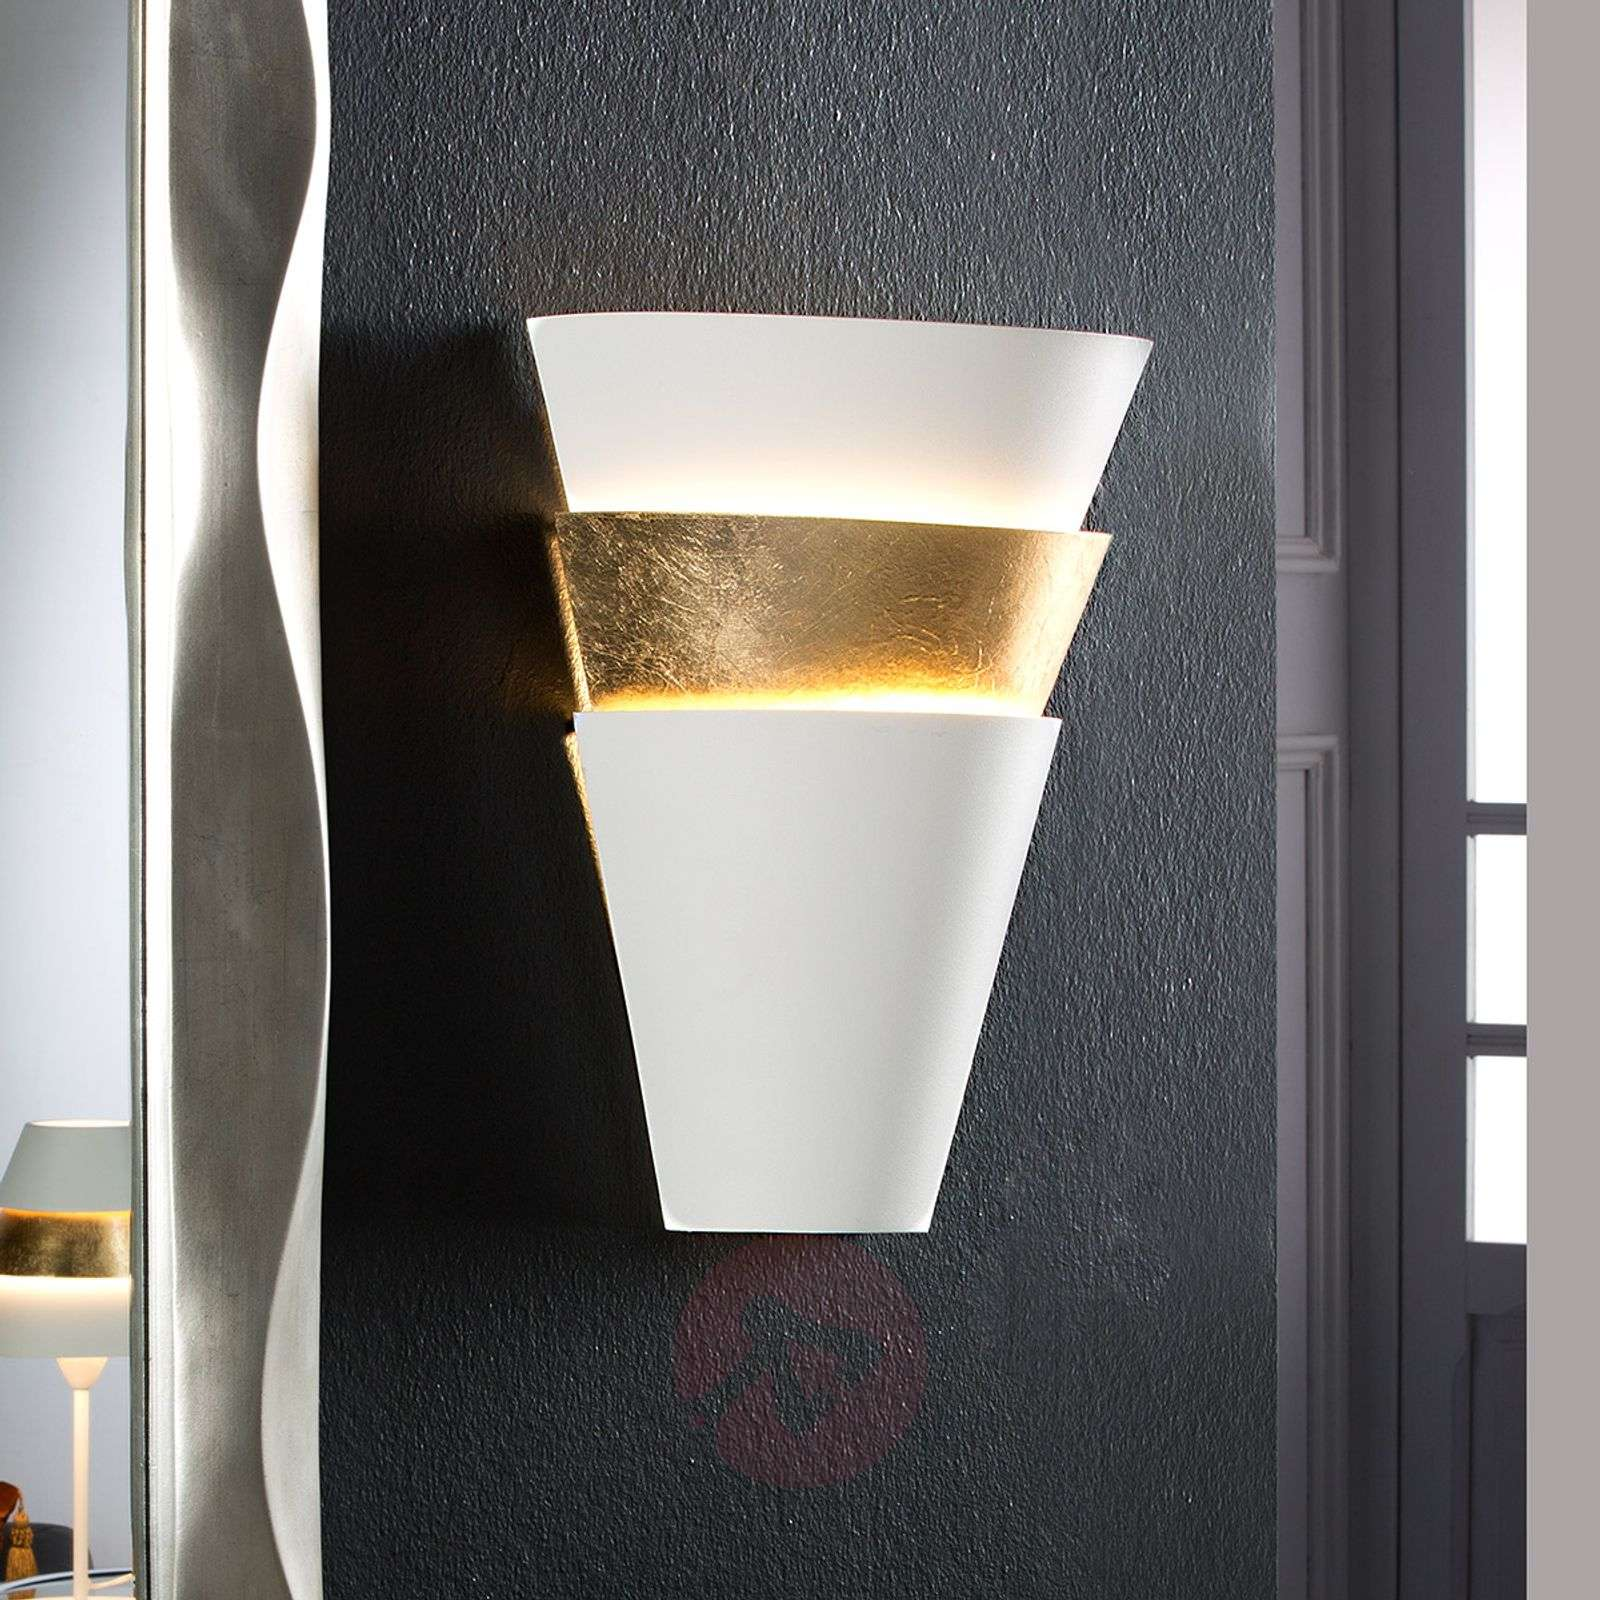 Wall light Isis with gold leaf finish-8582209-01